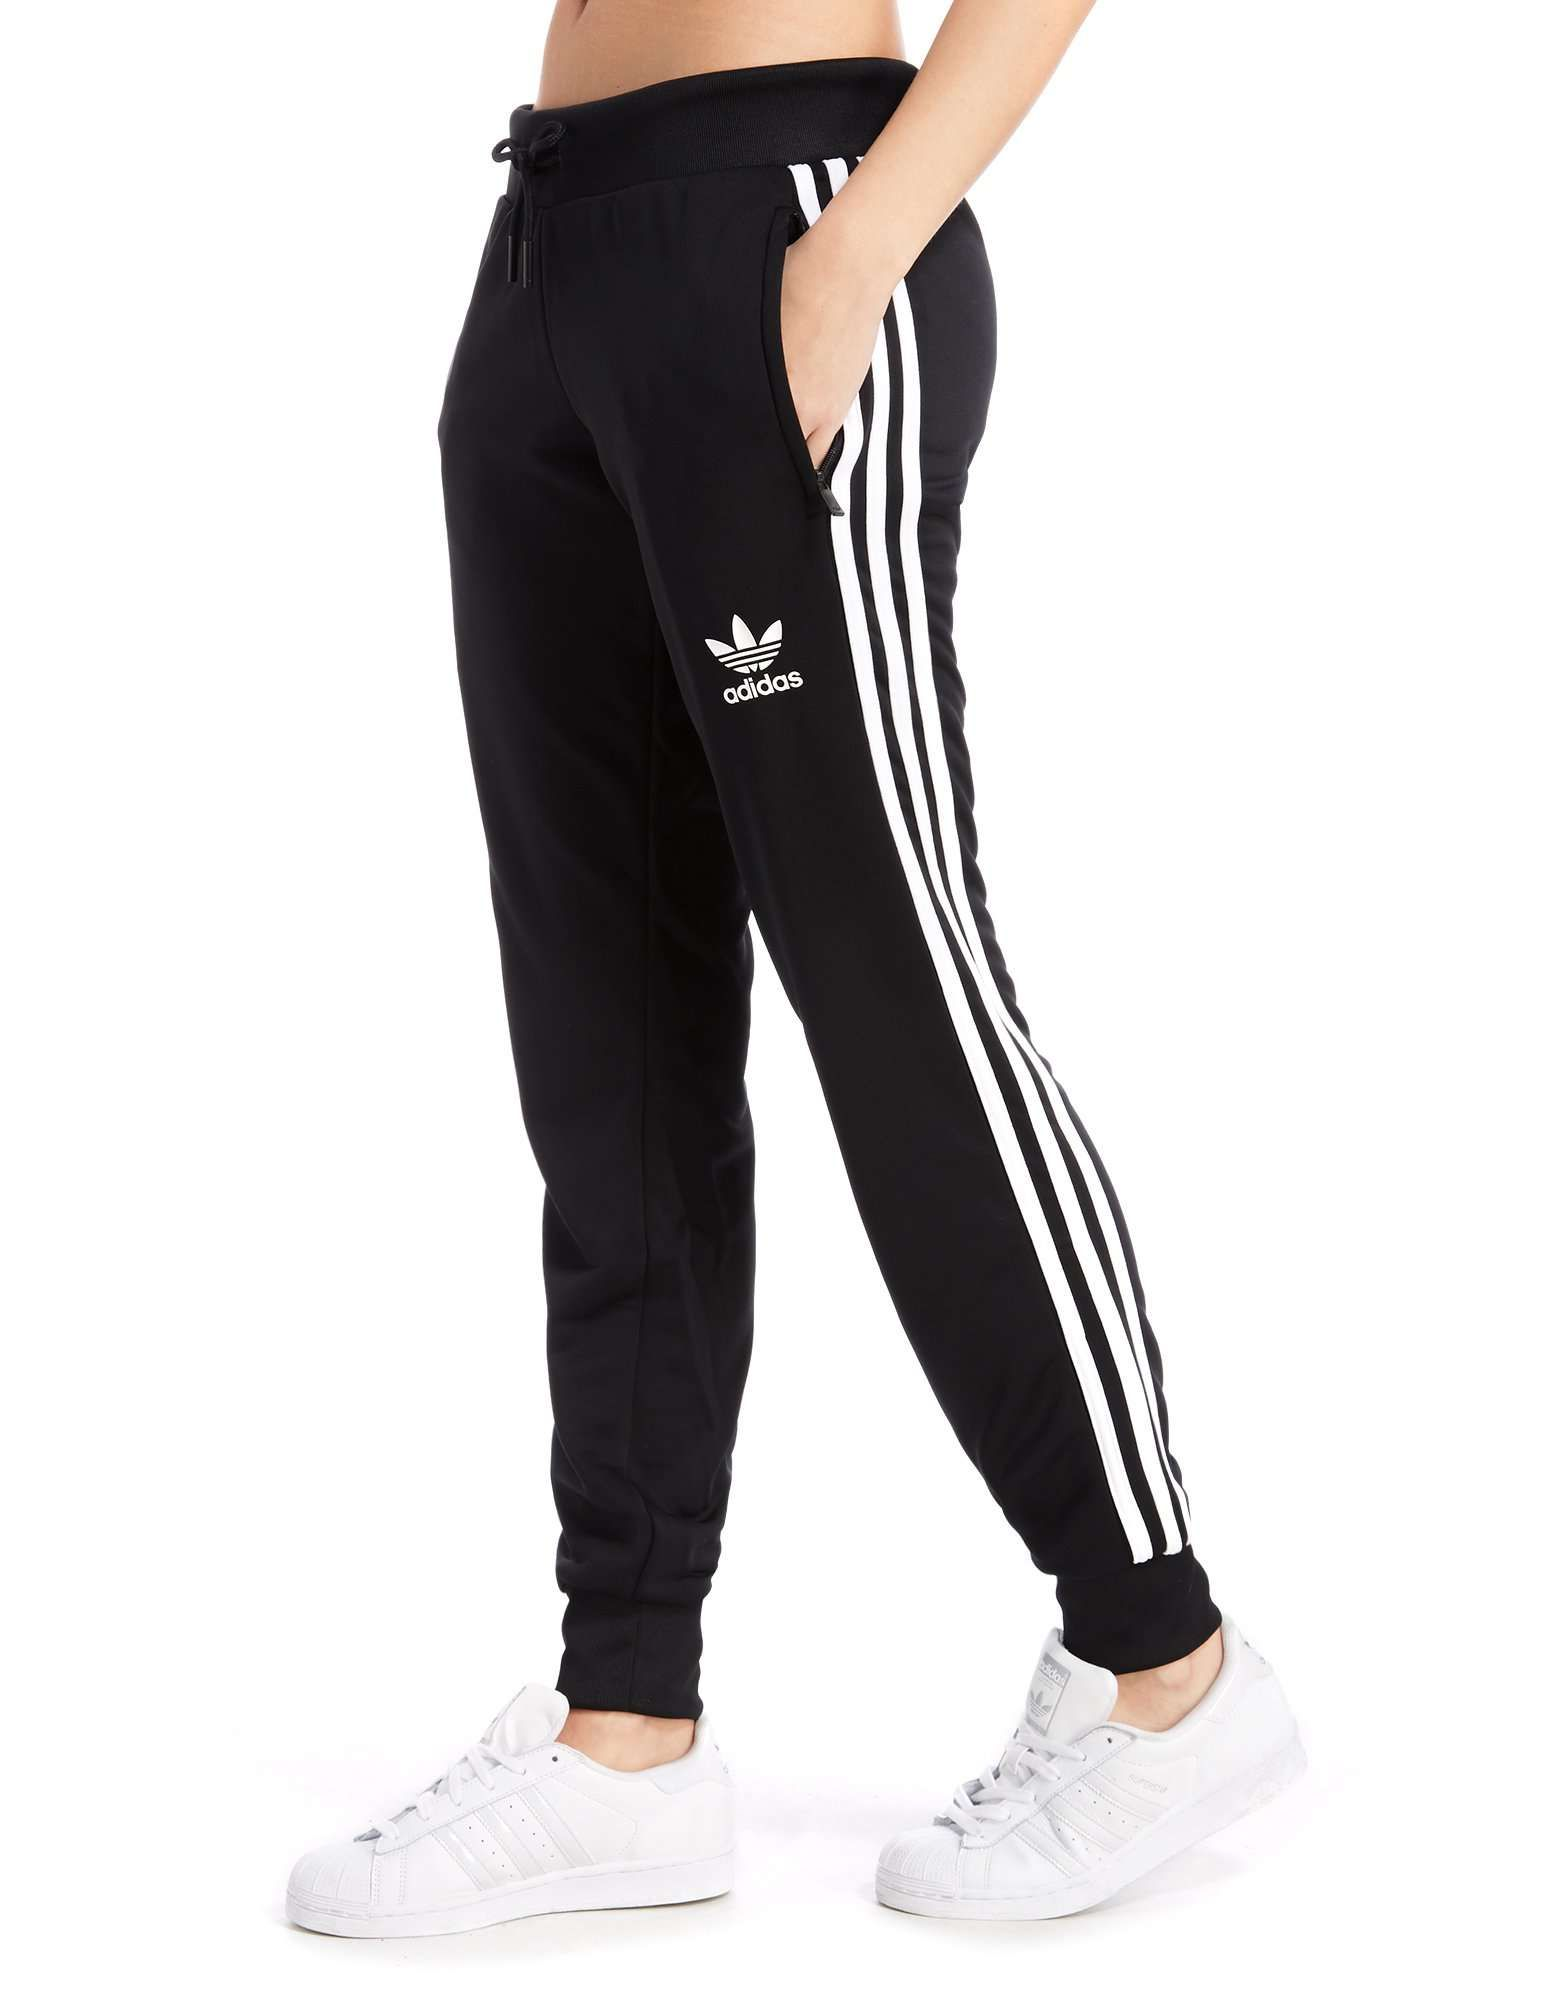 cf9888959250c adidas Originals Poly 3-Stripes Pants - Shop online for adidas Originals  Poly…